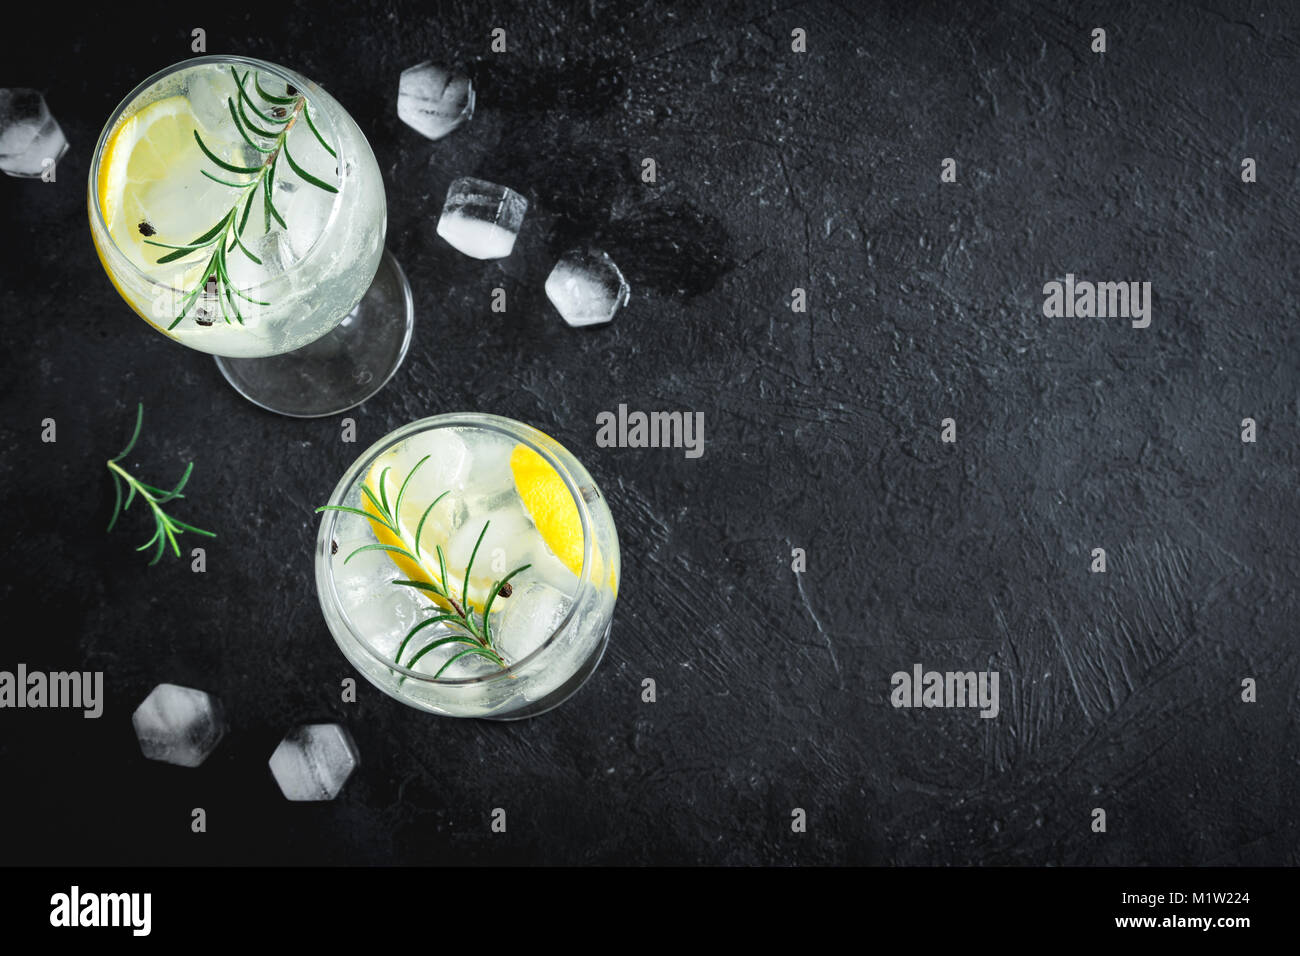 Alcohol drink (gin tonic cocktail) with lemon, rosemary and ice on rustic black stone table, copy space, top view. - Stock Image